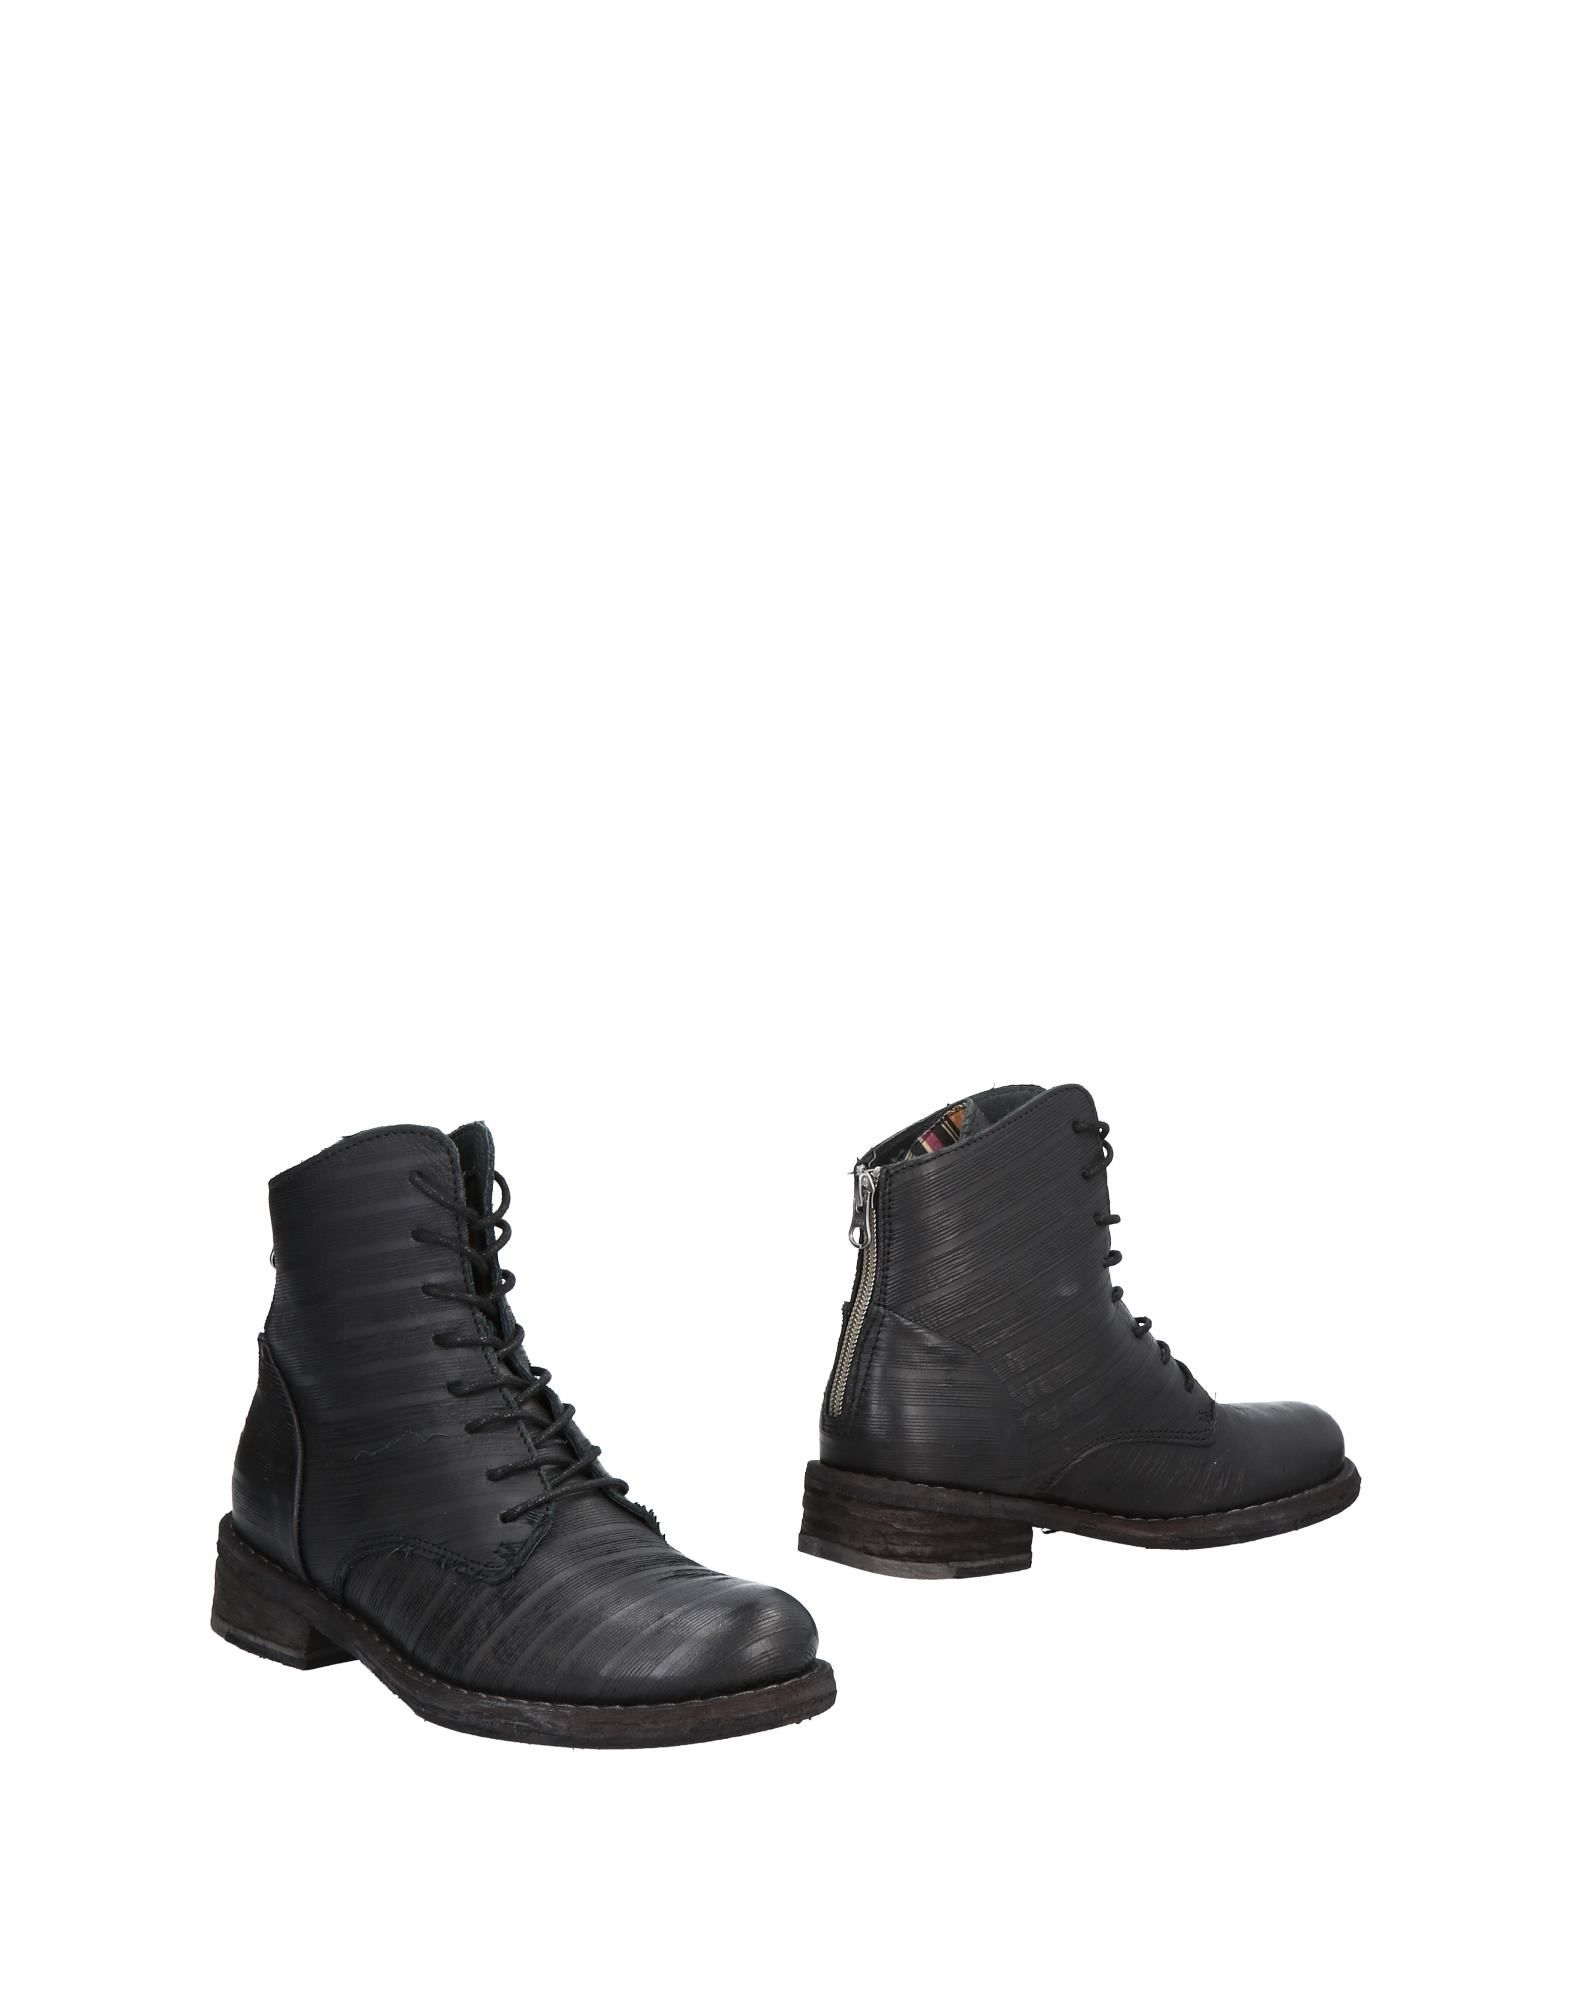 Felmini Ankle Boot - Women Felmini Ankle Boots Boots Boots online on  United Kingdom - 11492856BH 0451fc